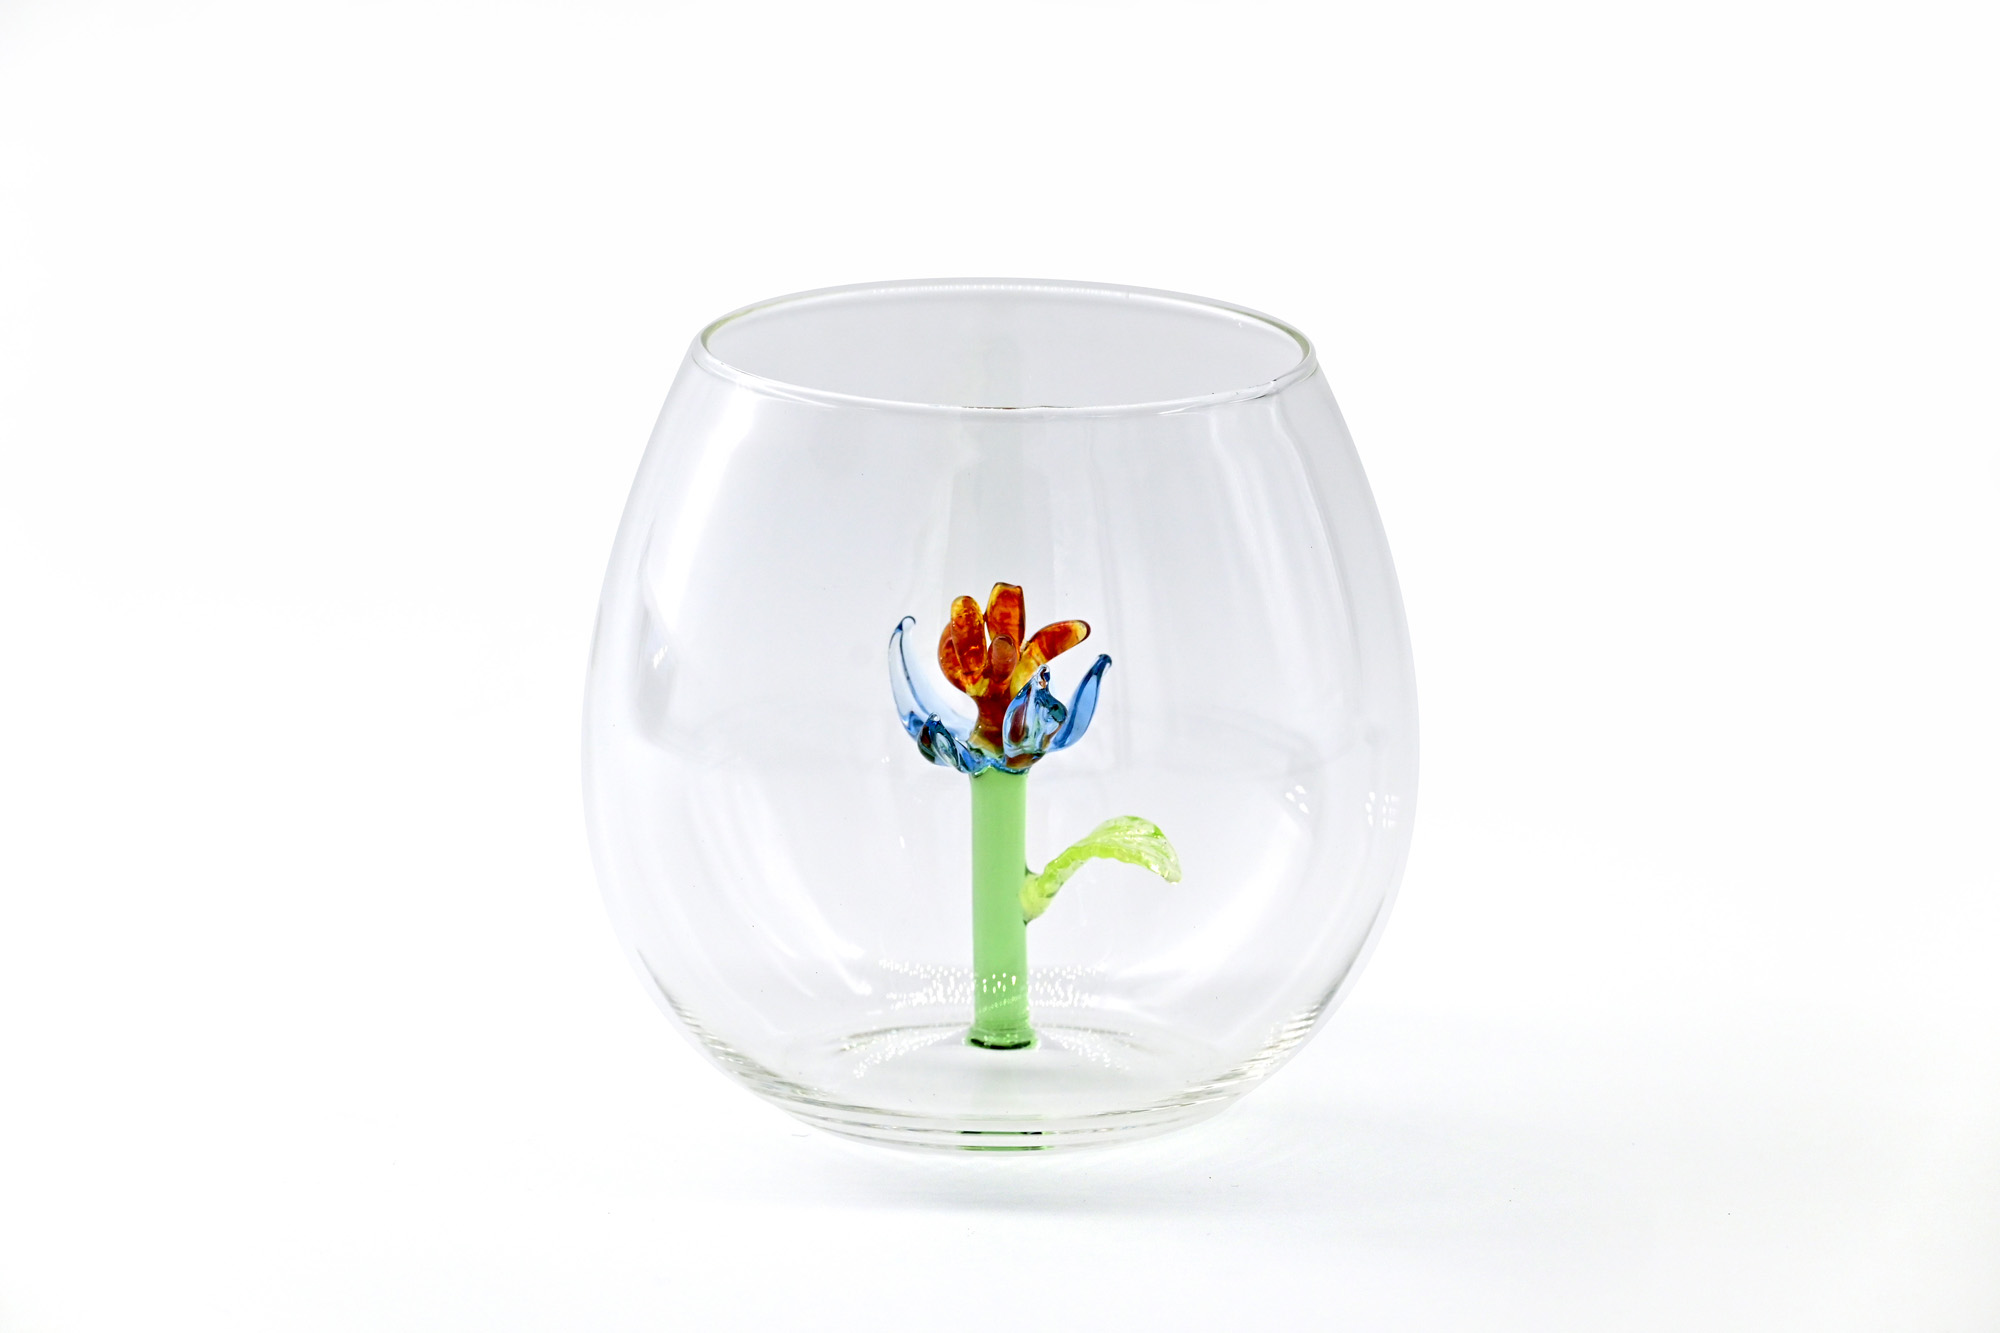 casarialto c160 rb flower power glass red and blue 1